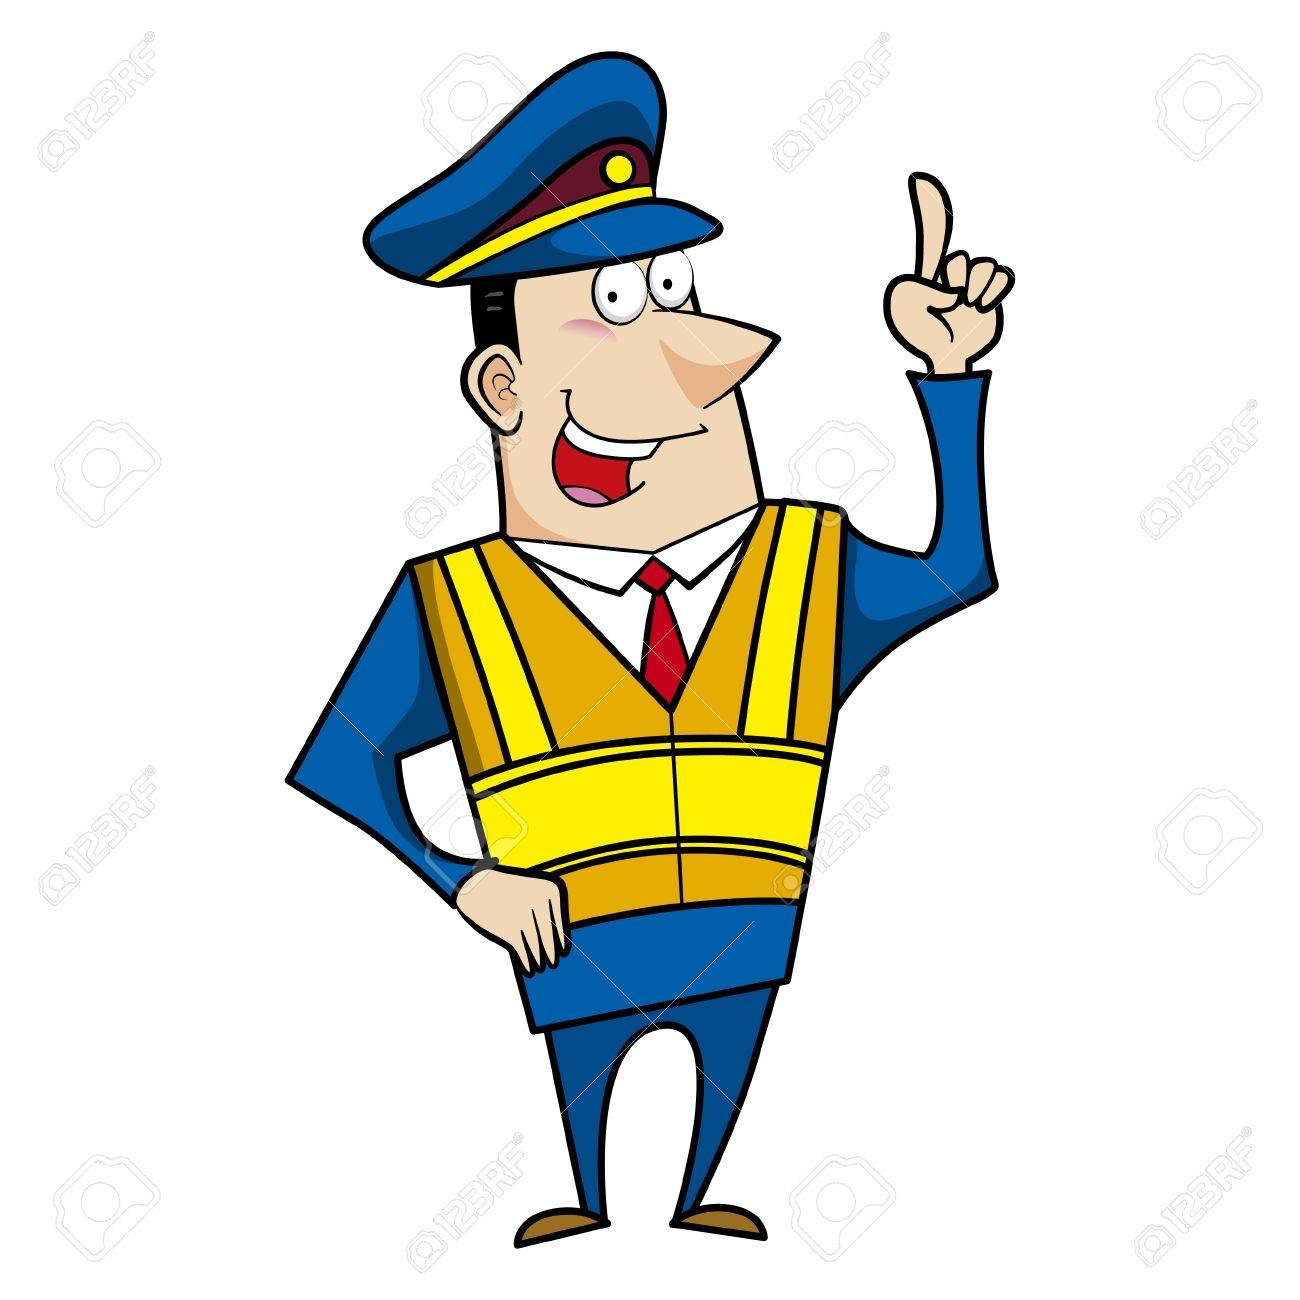 1300x1300 Male Cartoon Police Officer Pointing Royalty Free Cliparts